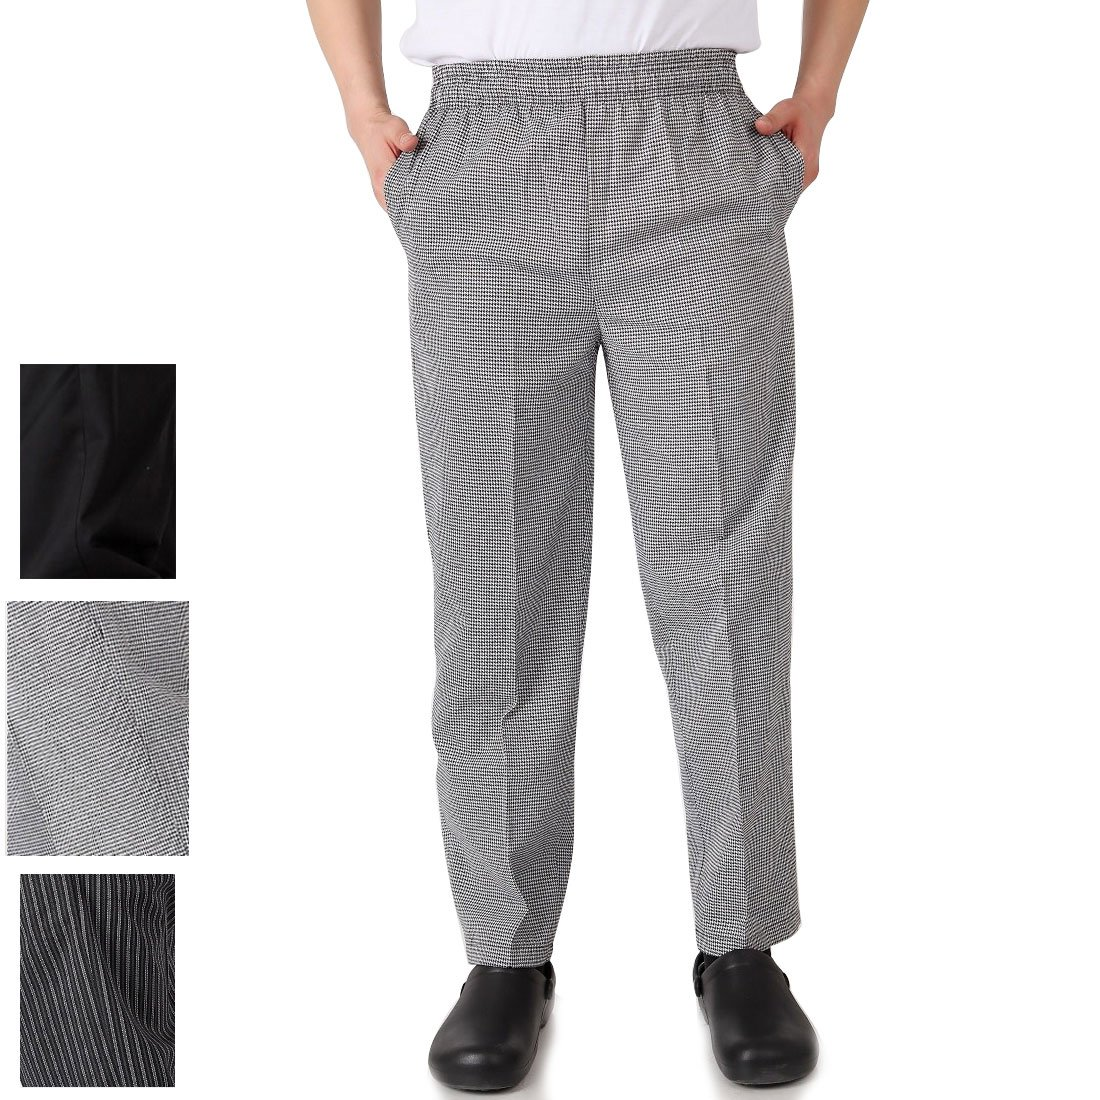 Levoberg Chef Pant Elastic Waist with Pocket Men's Baggy Chef Pant Restaurant Hotel Work Uniforms 2XL Lattices